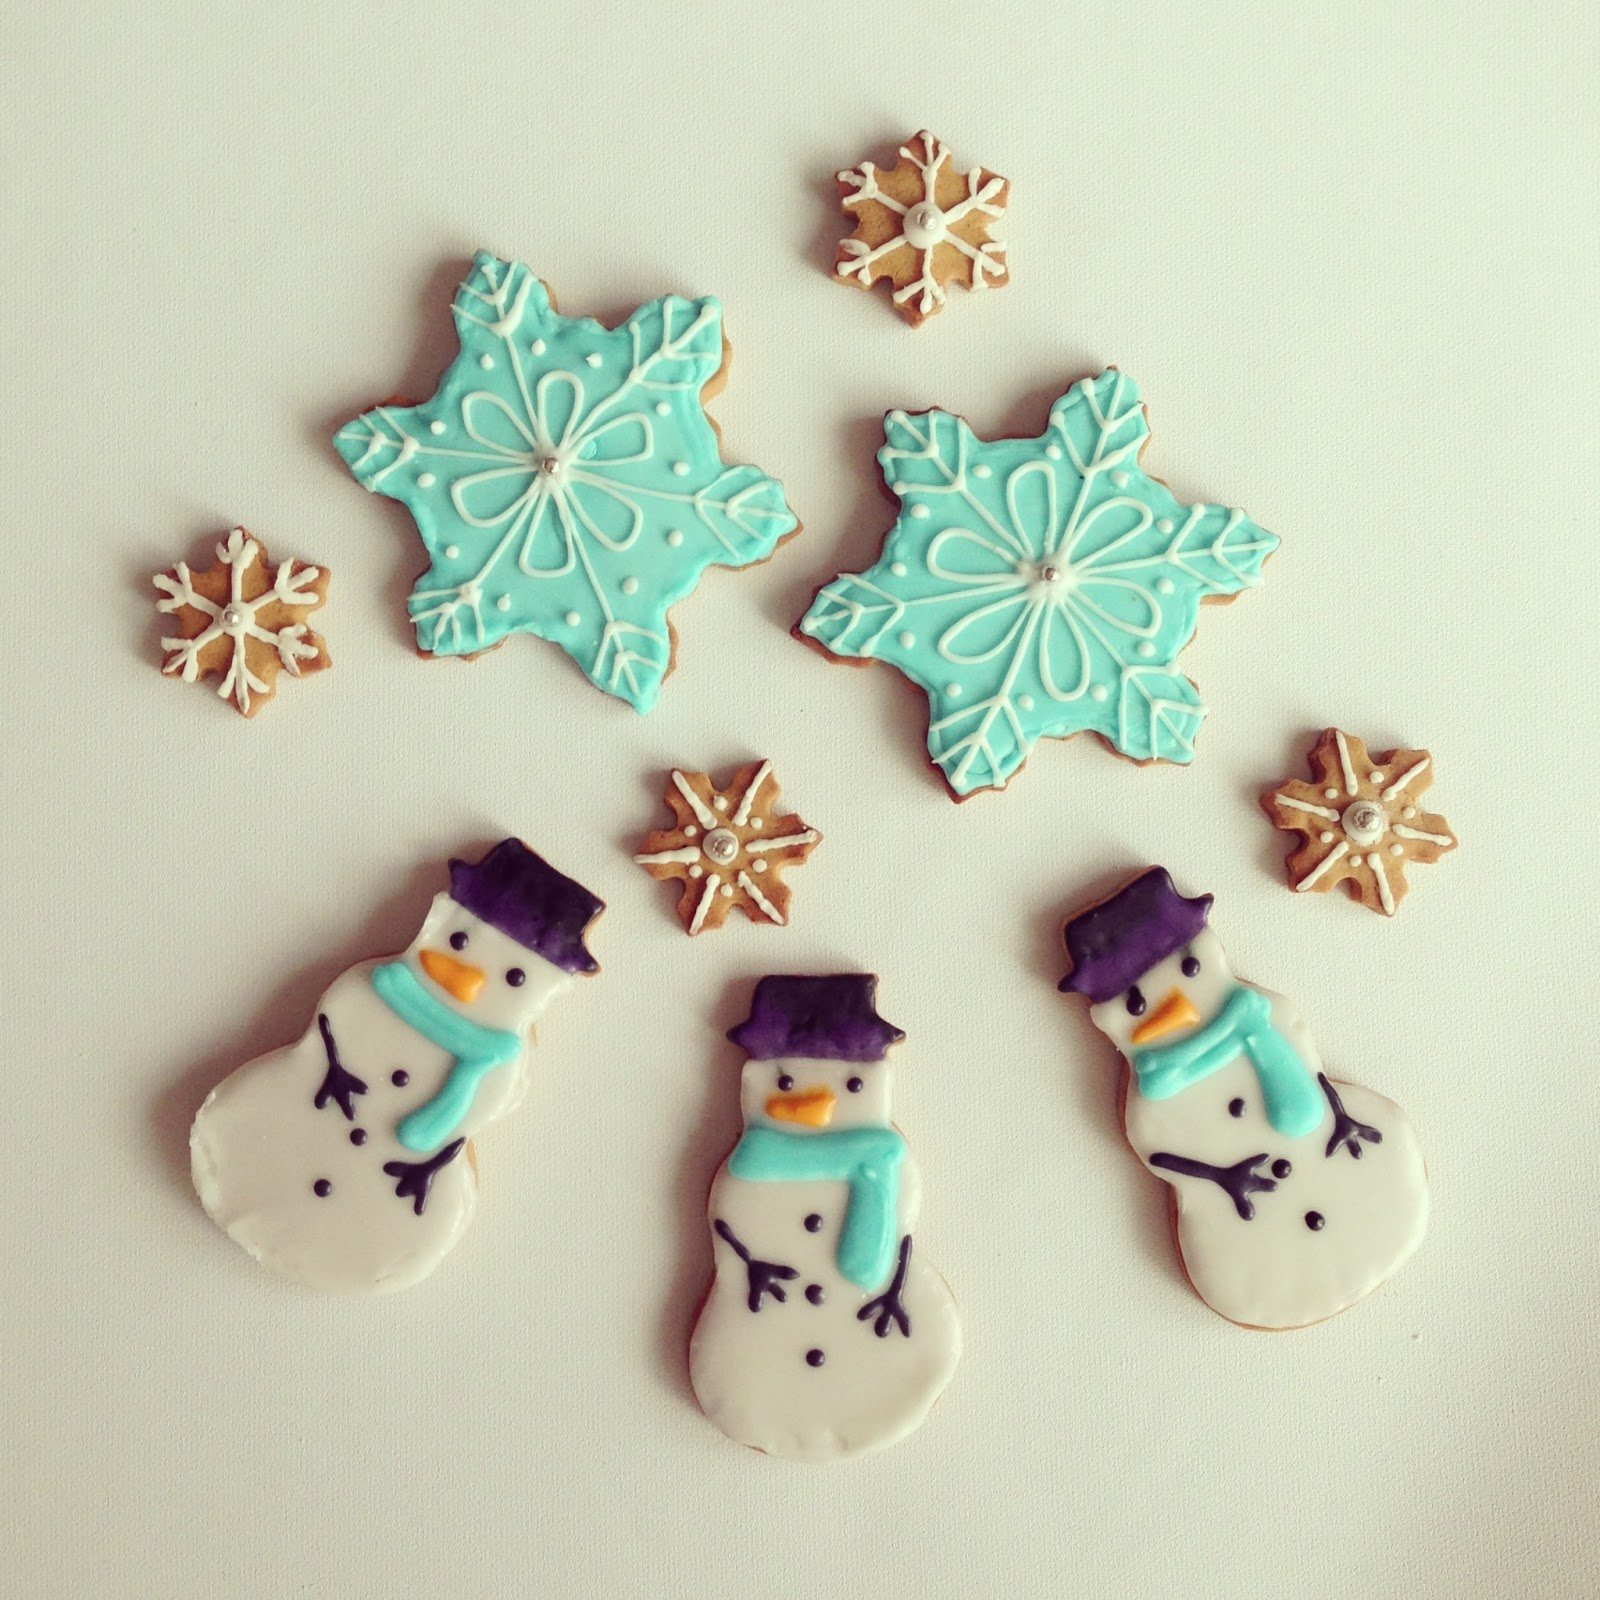 Homemade Gingerbread snowman and snowflakes cookies